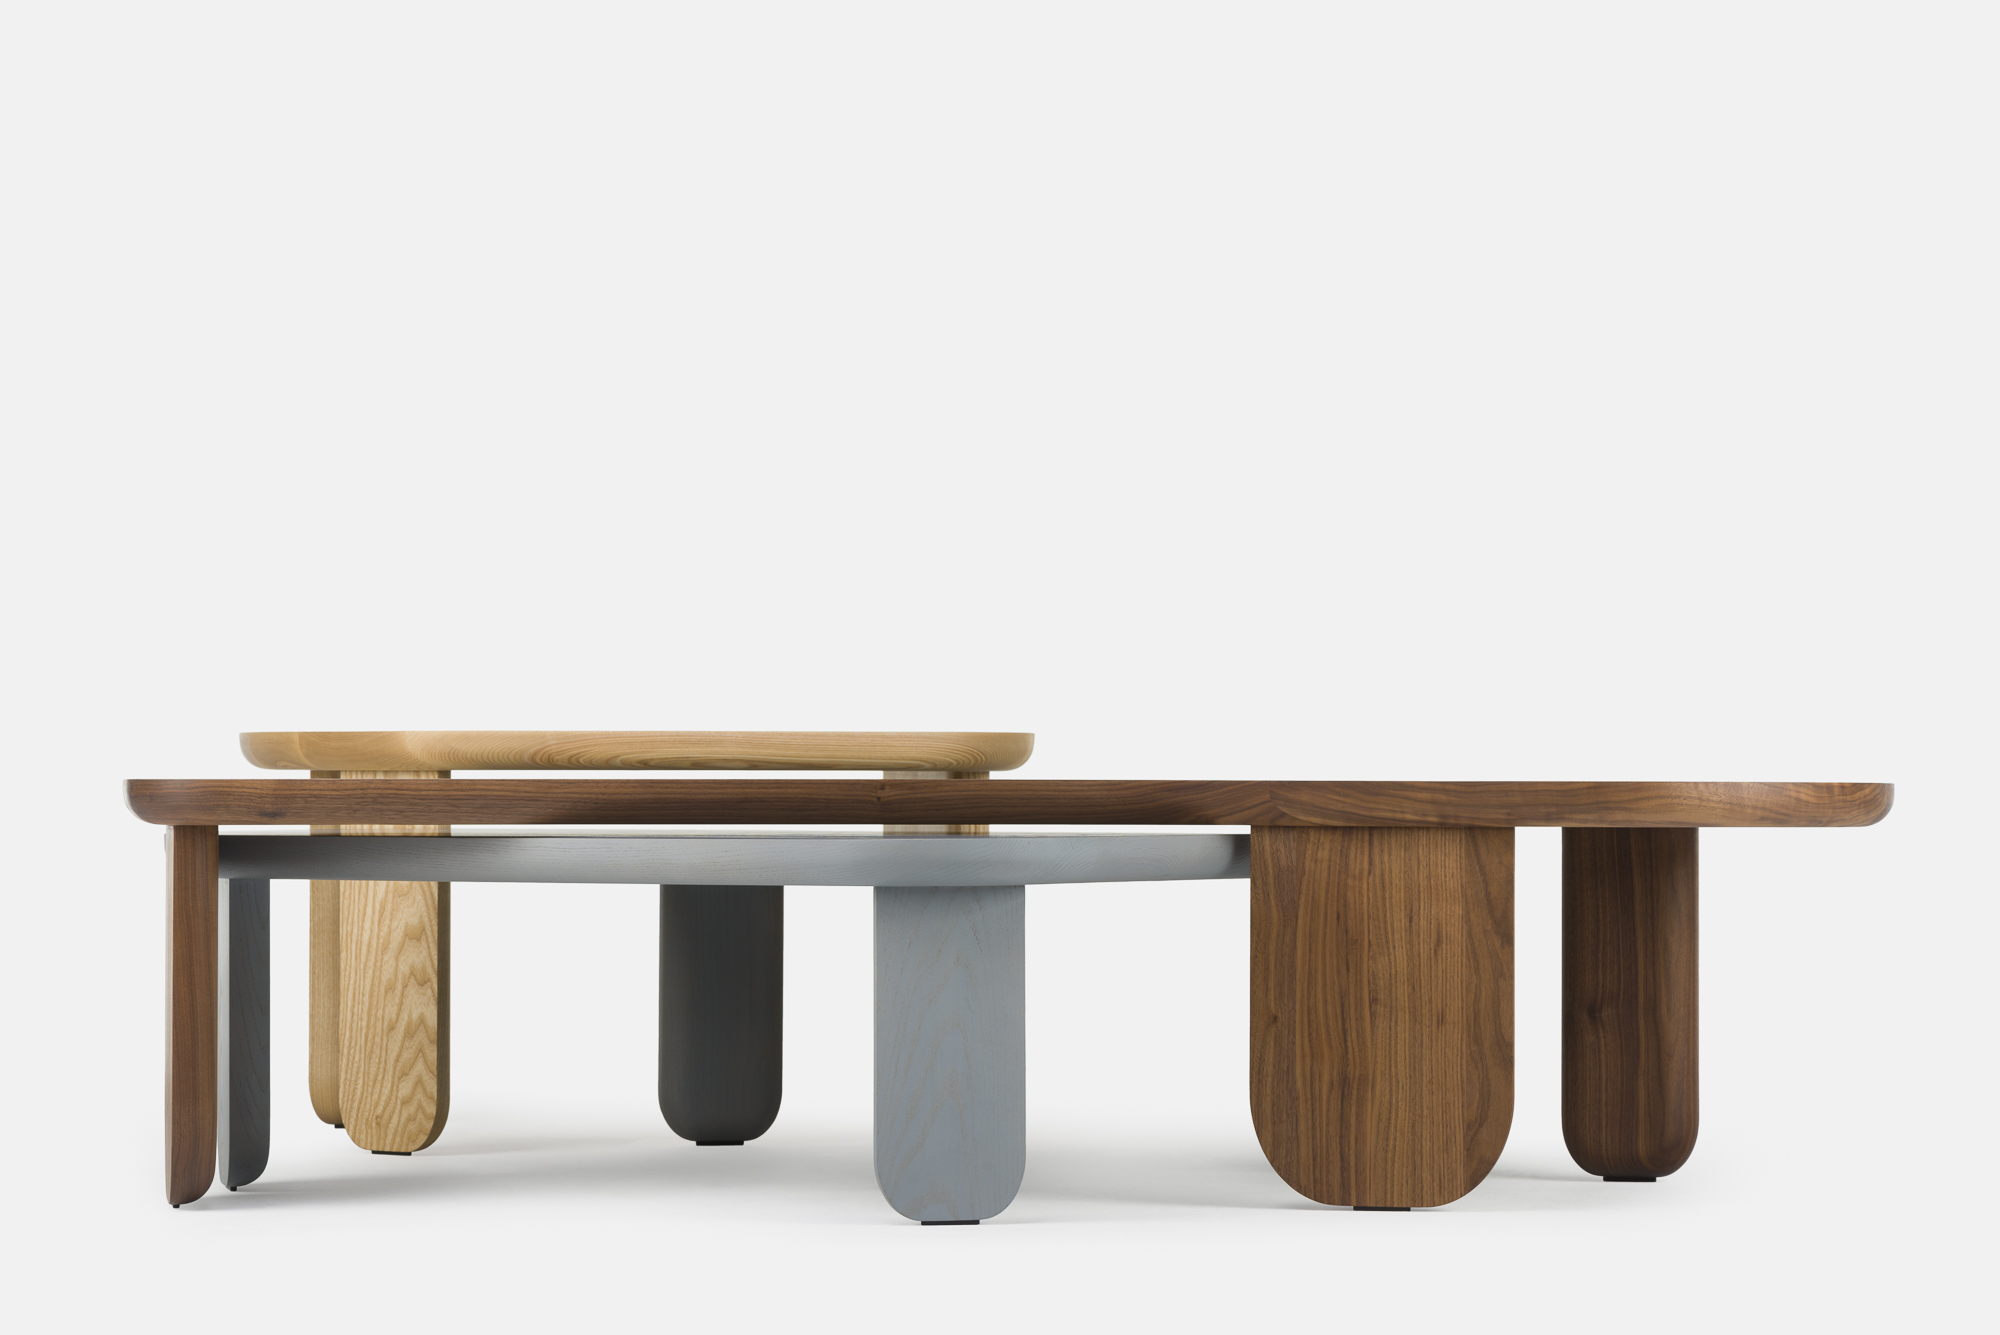 Kim occasional tables by Nichetto